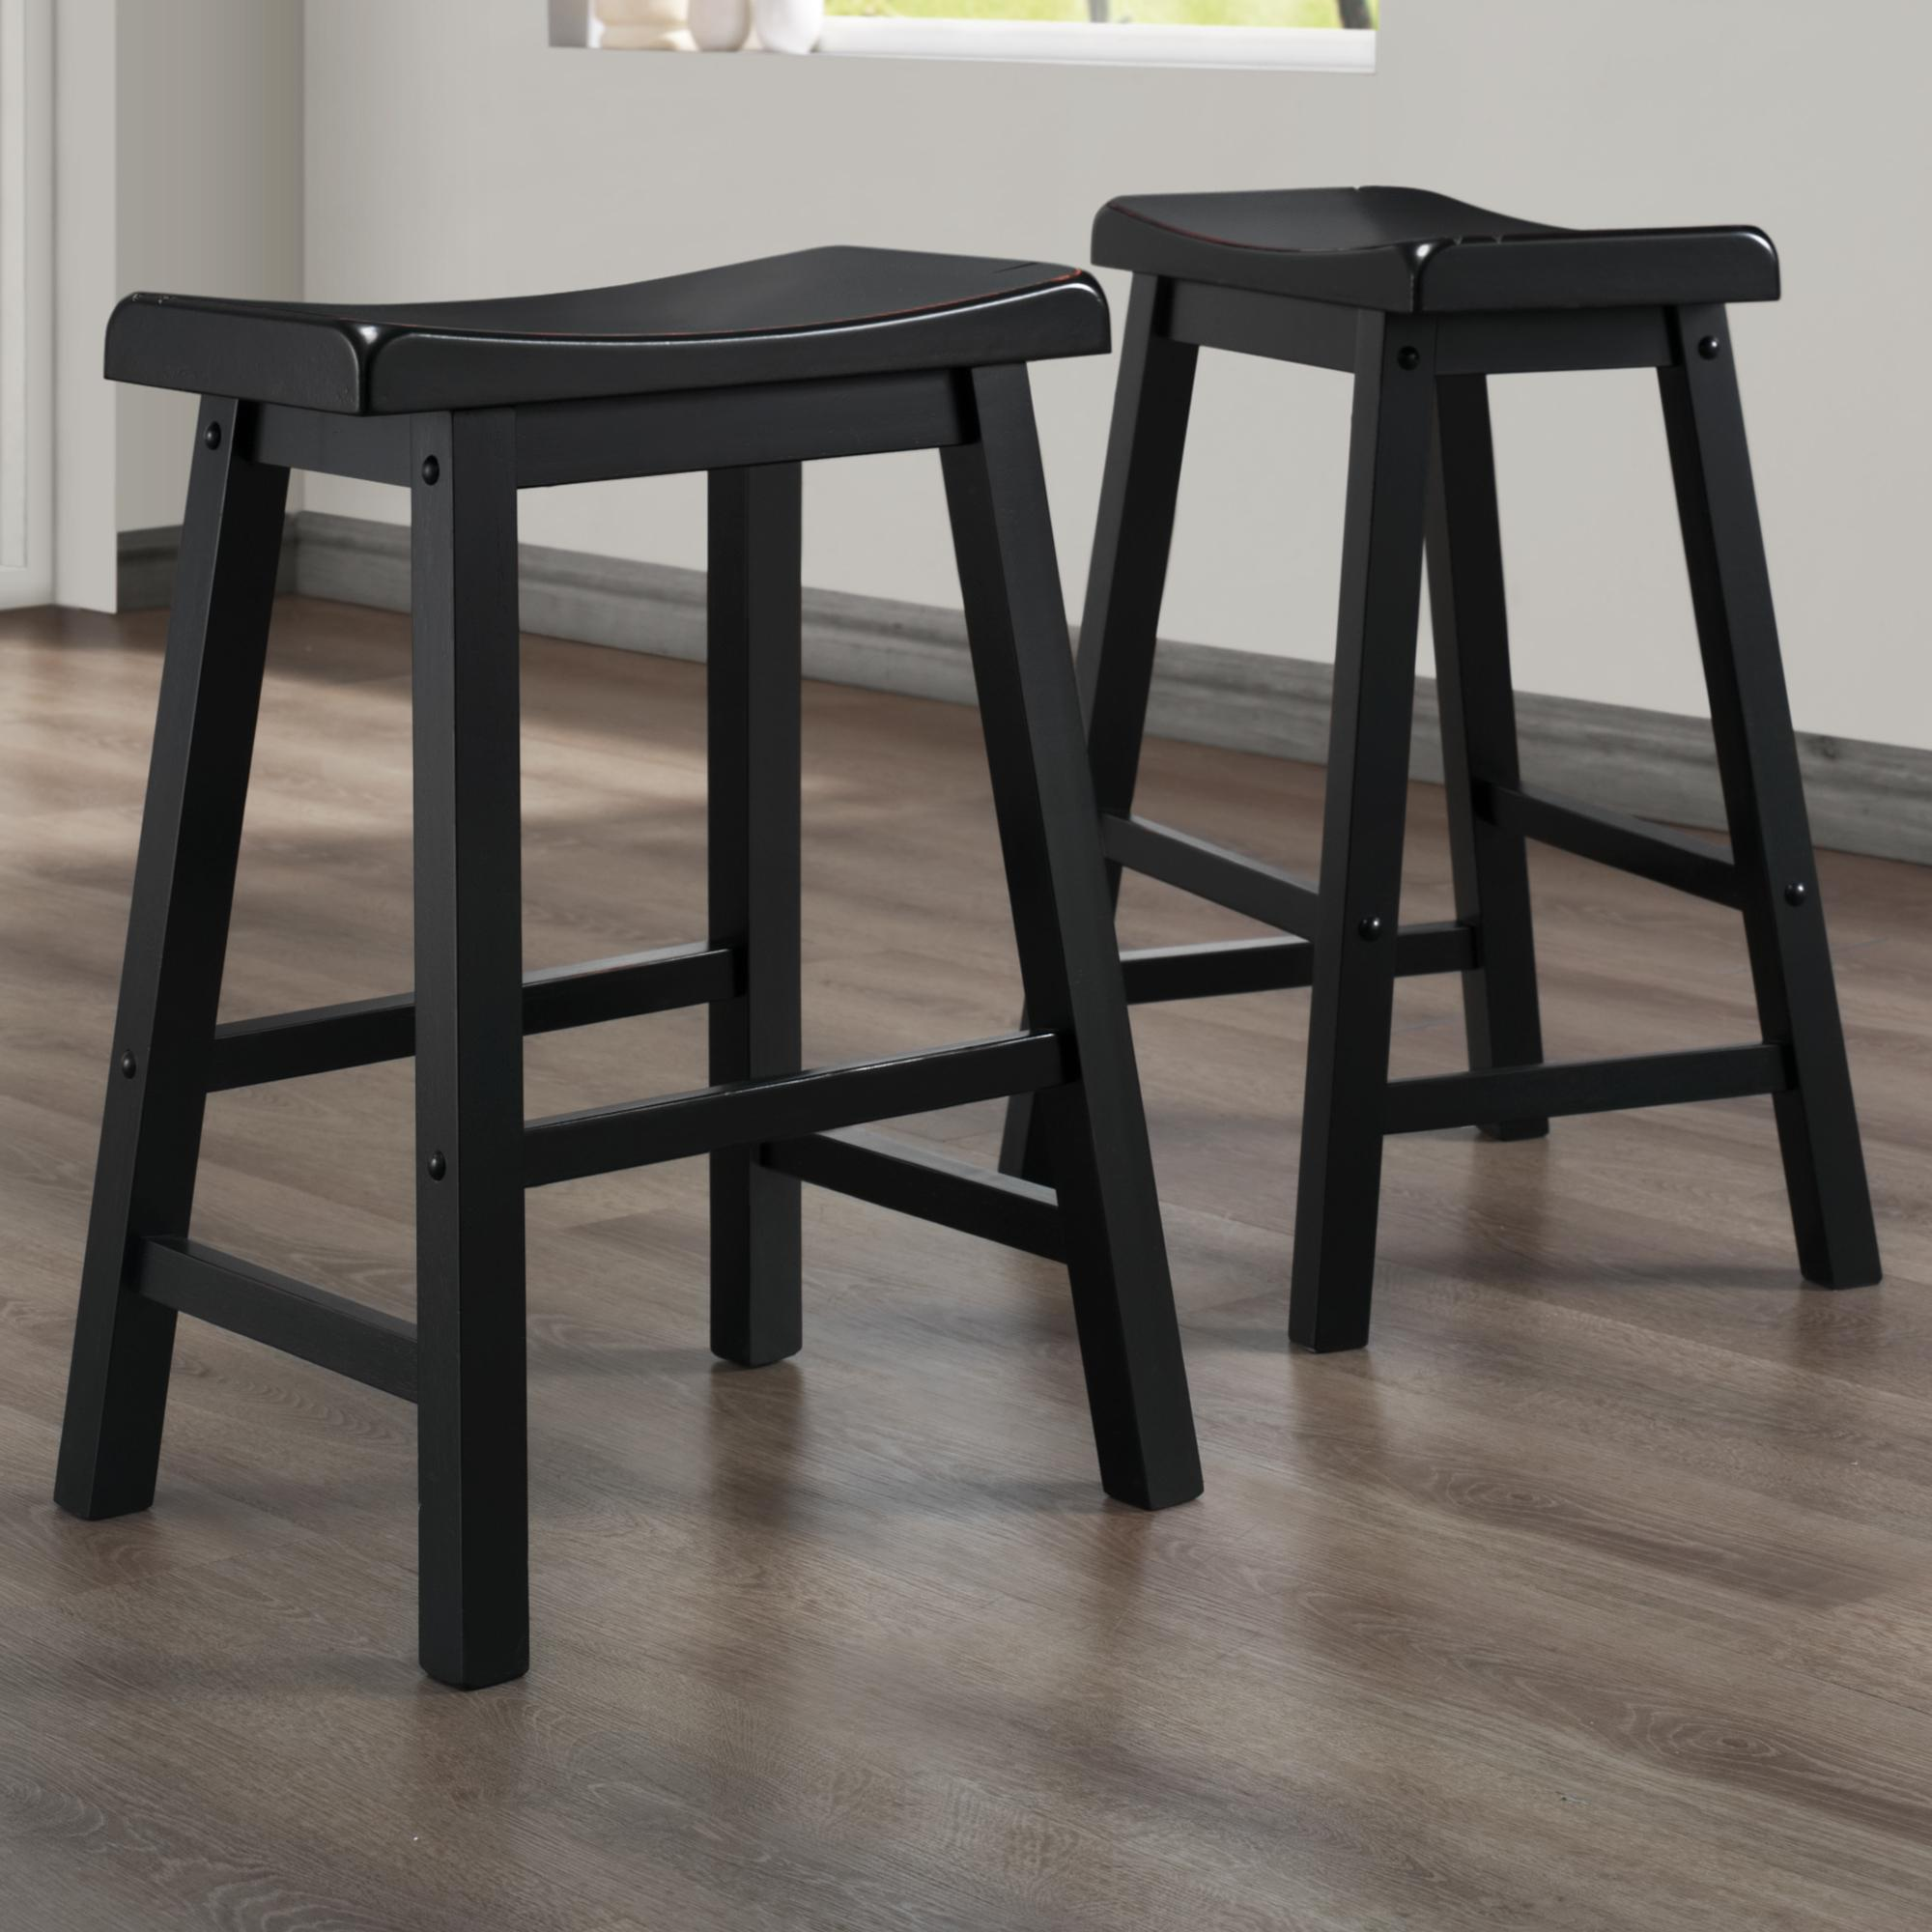 Homelegance 5302 24 Inch Stool - Item Number: 5302BK24